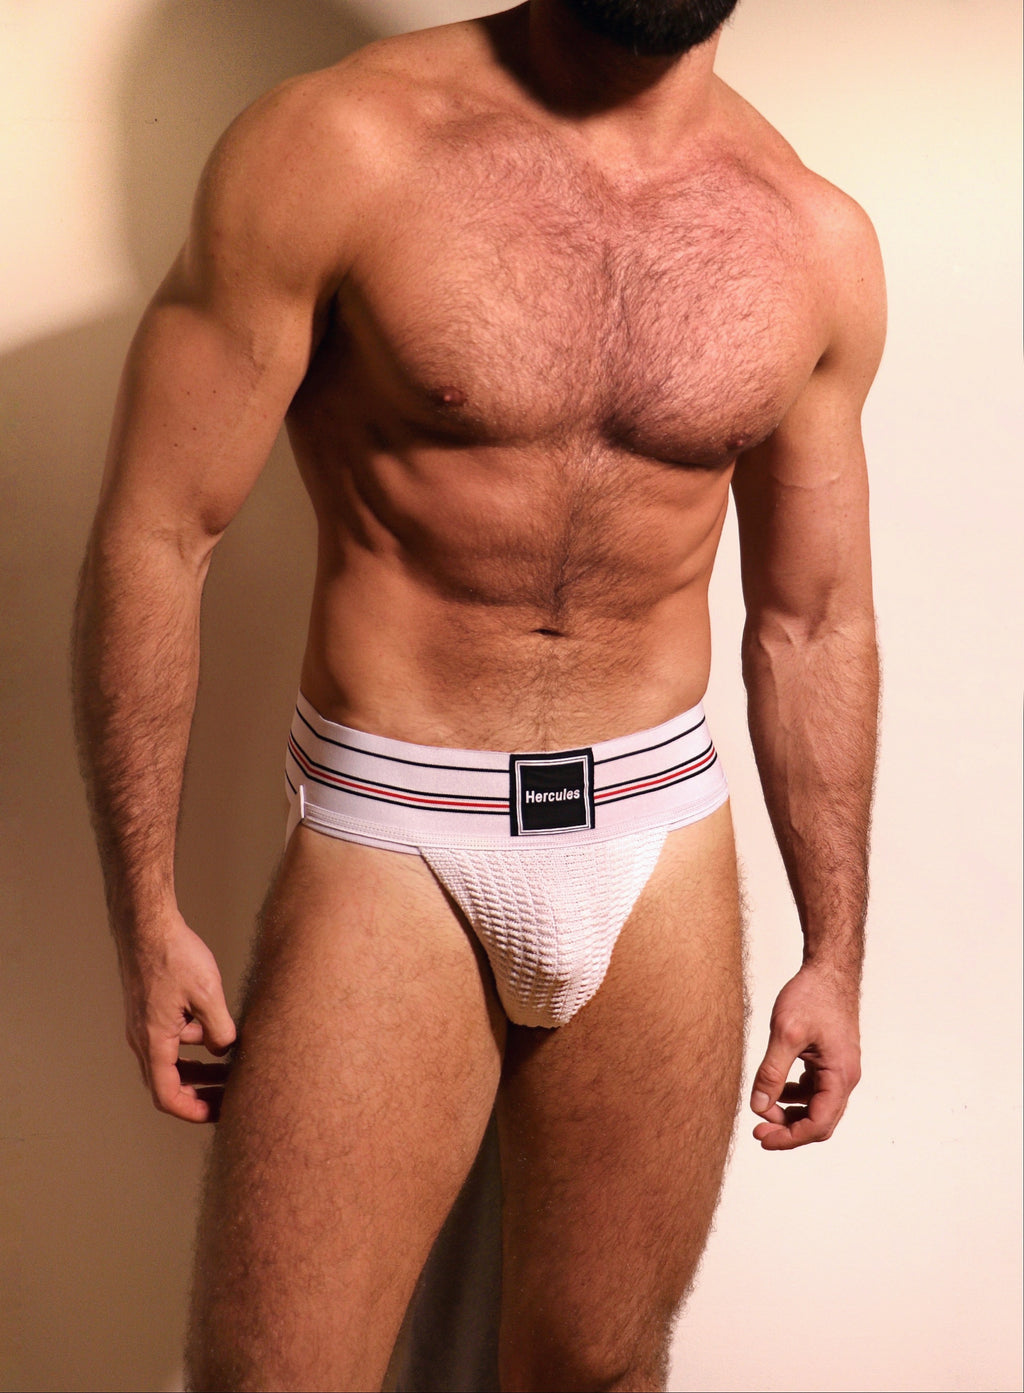 HERCULES CLASSIC JOCKSTRAP - WHITE WITH STRIPE